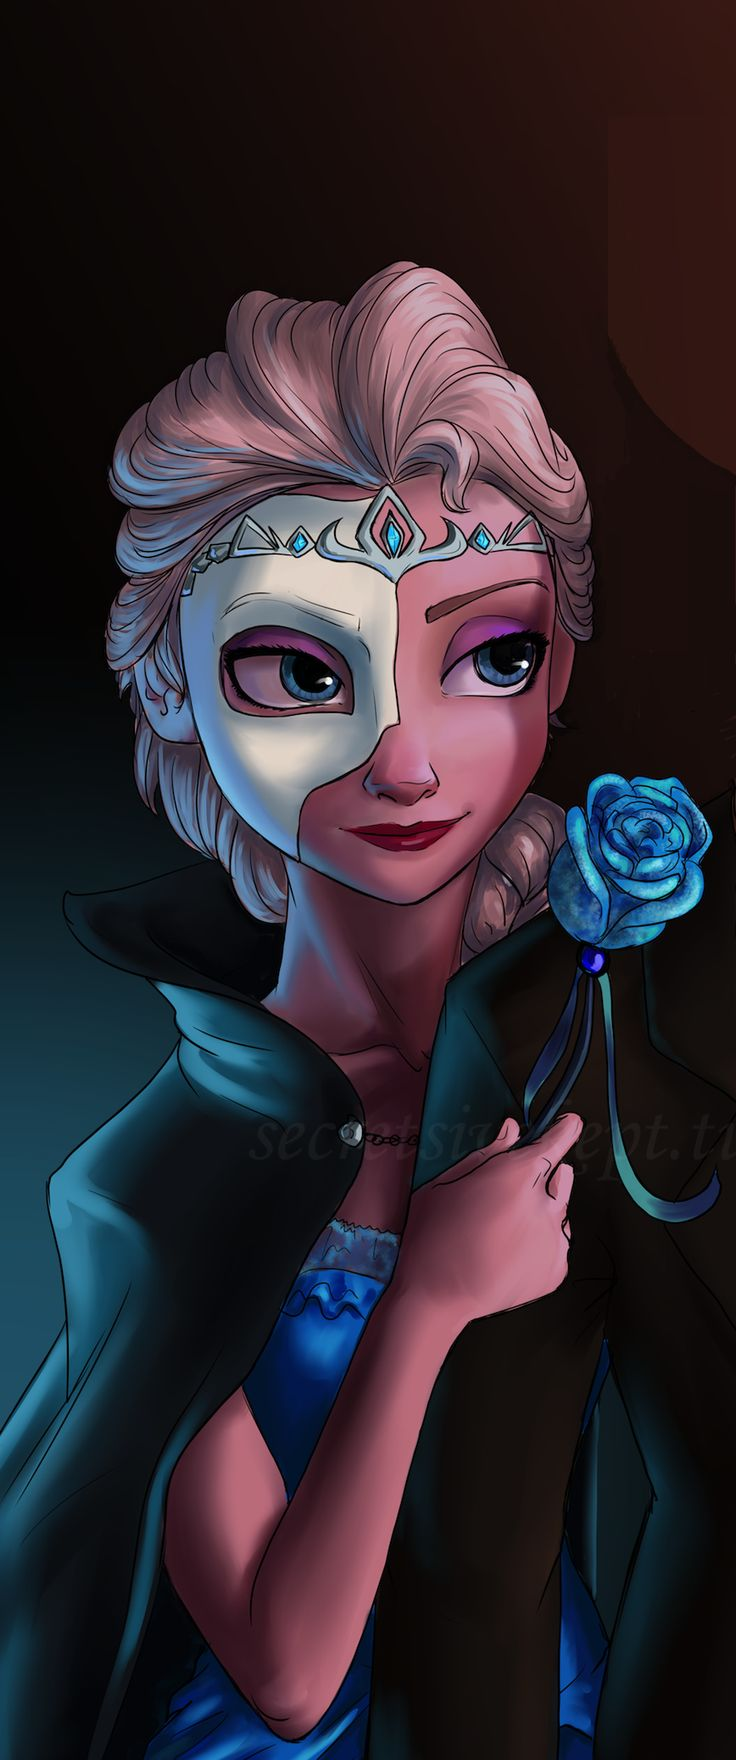 If Elsa were at a Masquerade ball